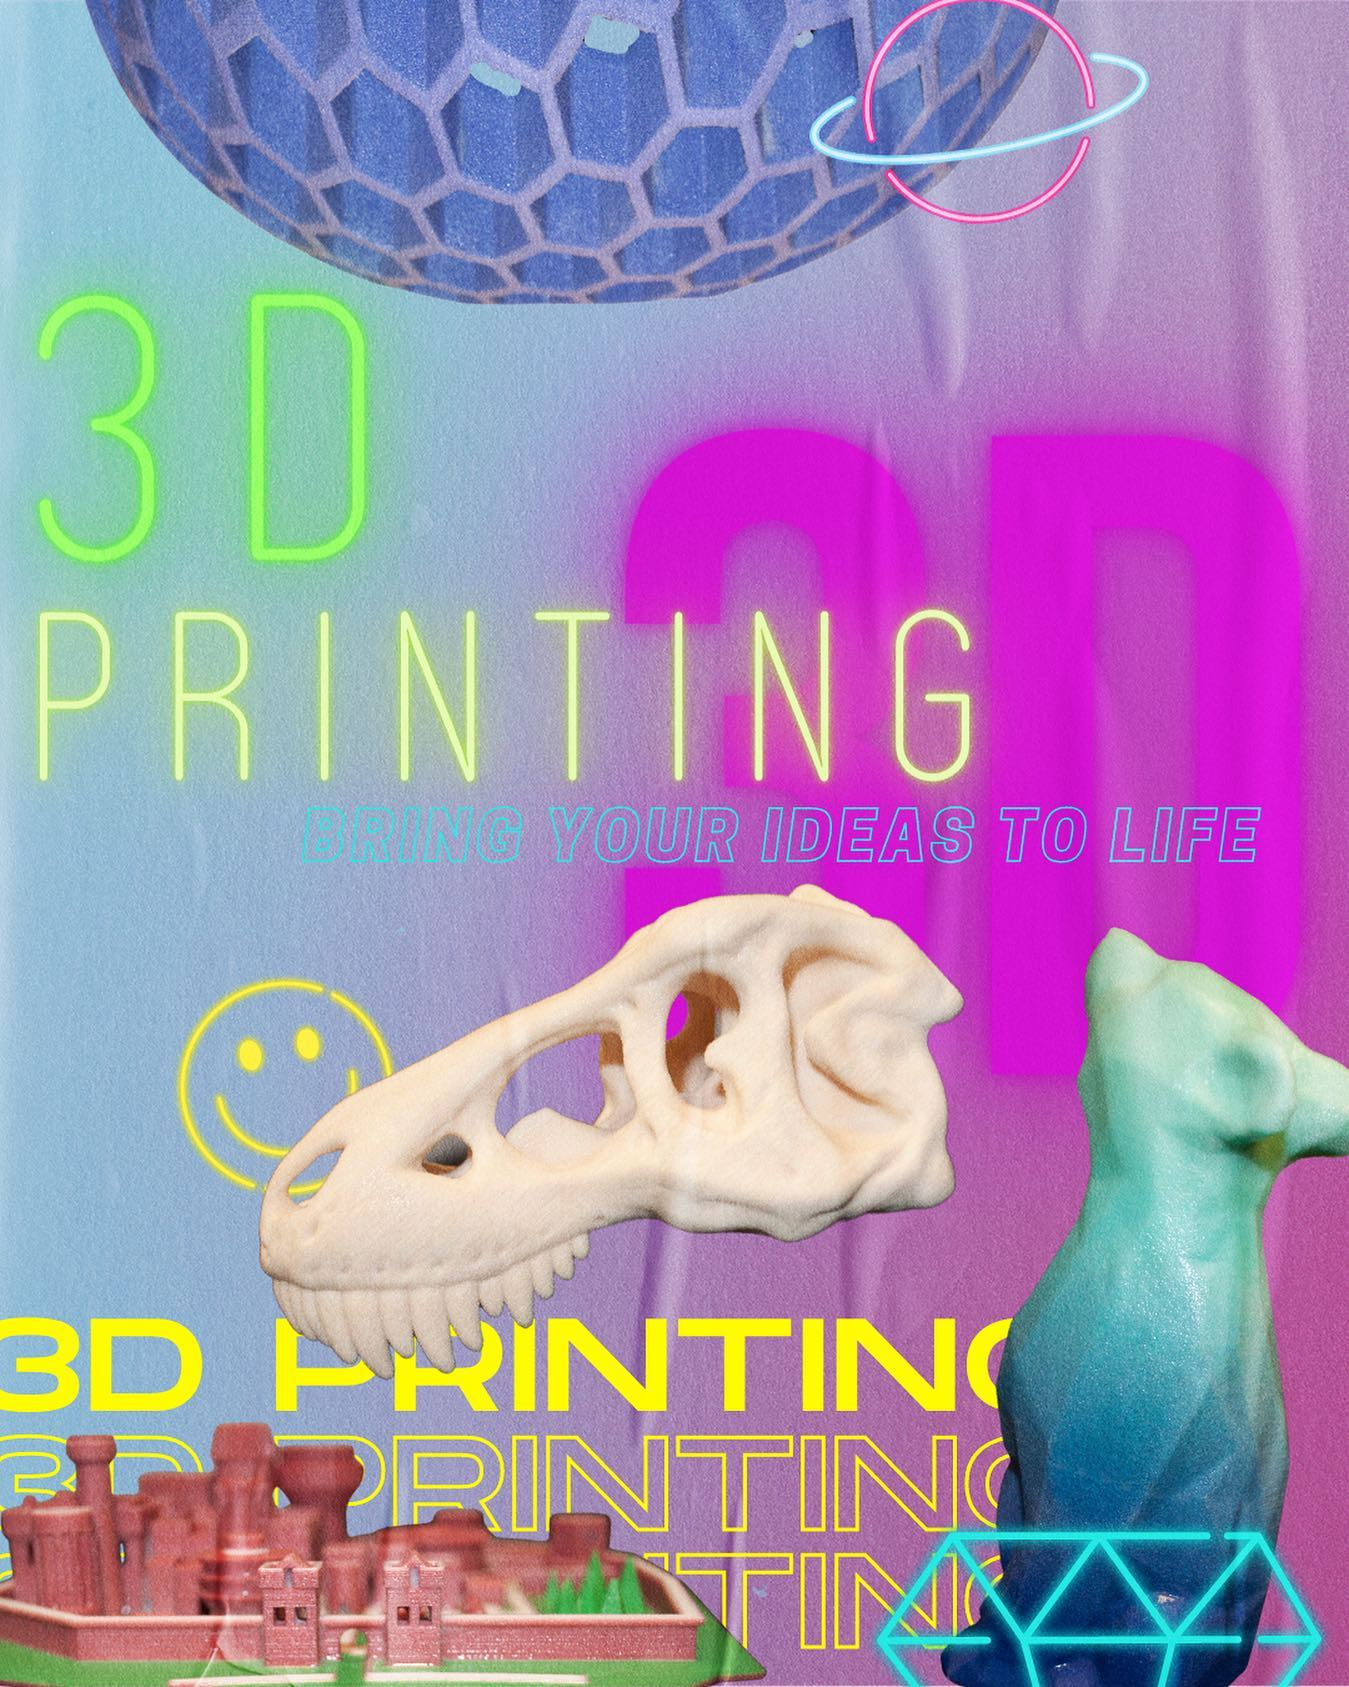 Book an appointment to print a 3D model or learn how to create your model at the TLC 🖥 #TLCTips ➡️ link in bio